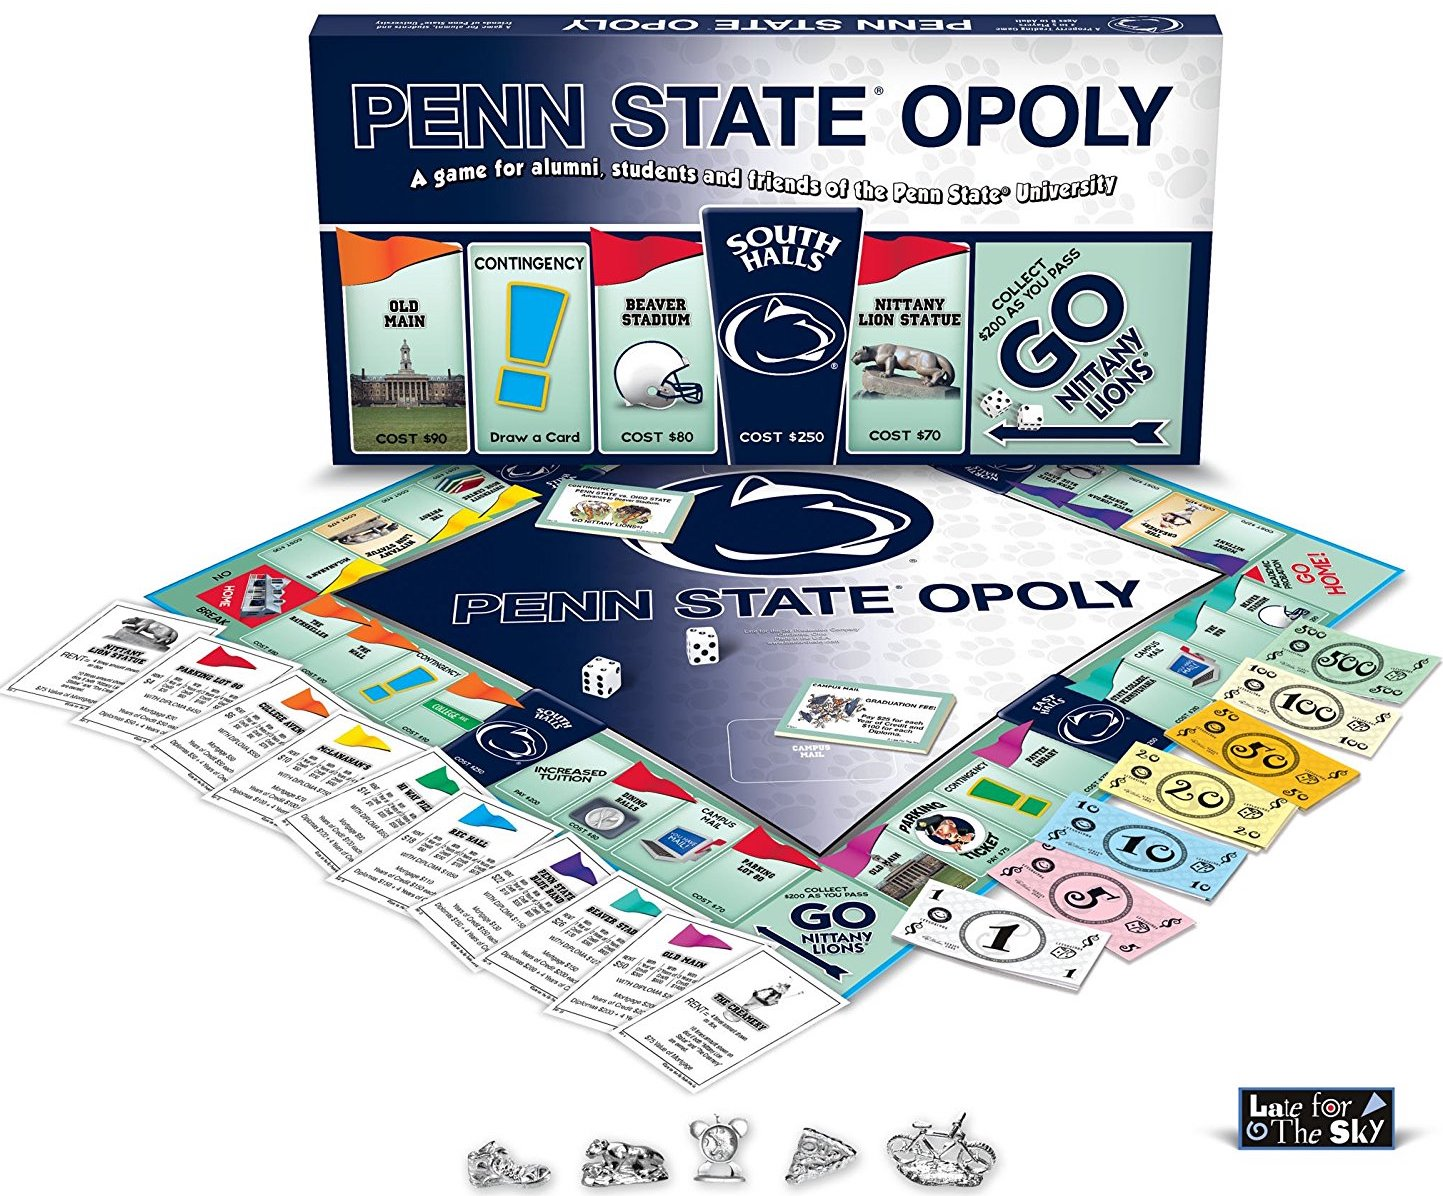 Board Game with a Penn State Theme. Penn Stateopoly